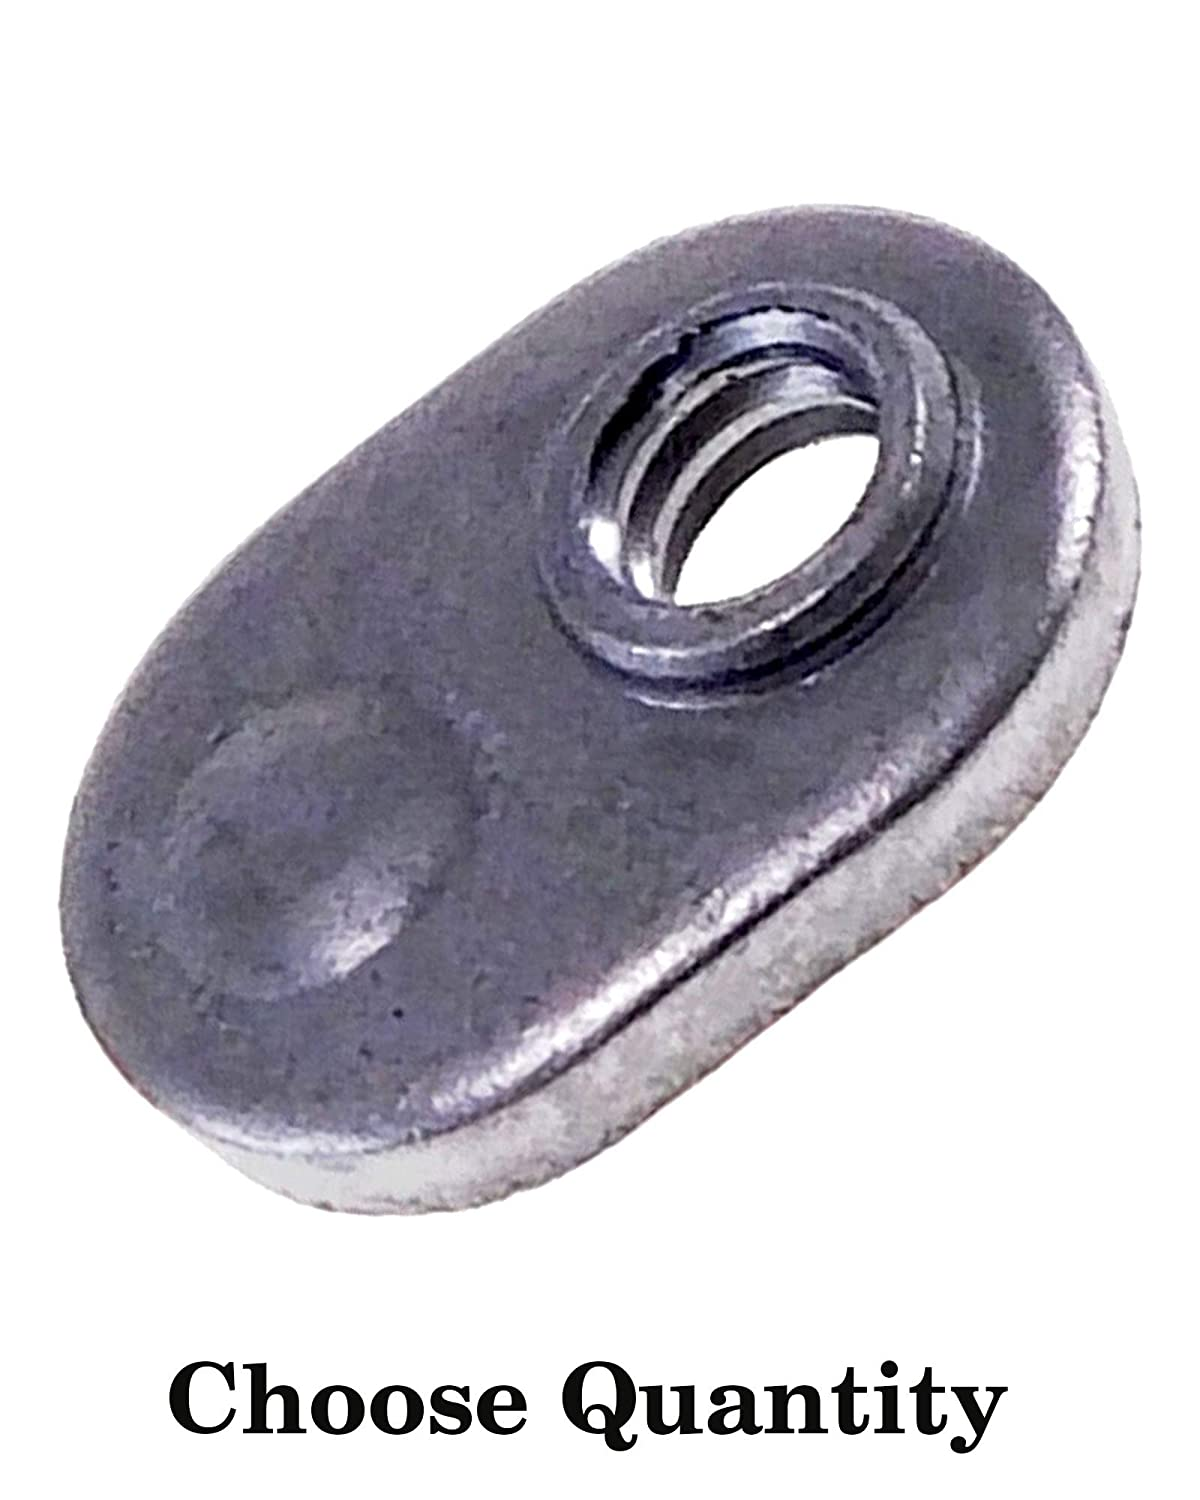 50 Spot Weld Nuts #8-32 Single Tab Weld Nut with Target Low Carbon Plain Steel Weld Nuts//Spot//Offset Hole